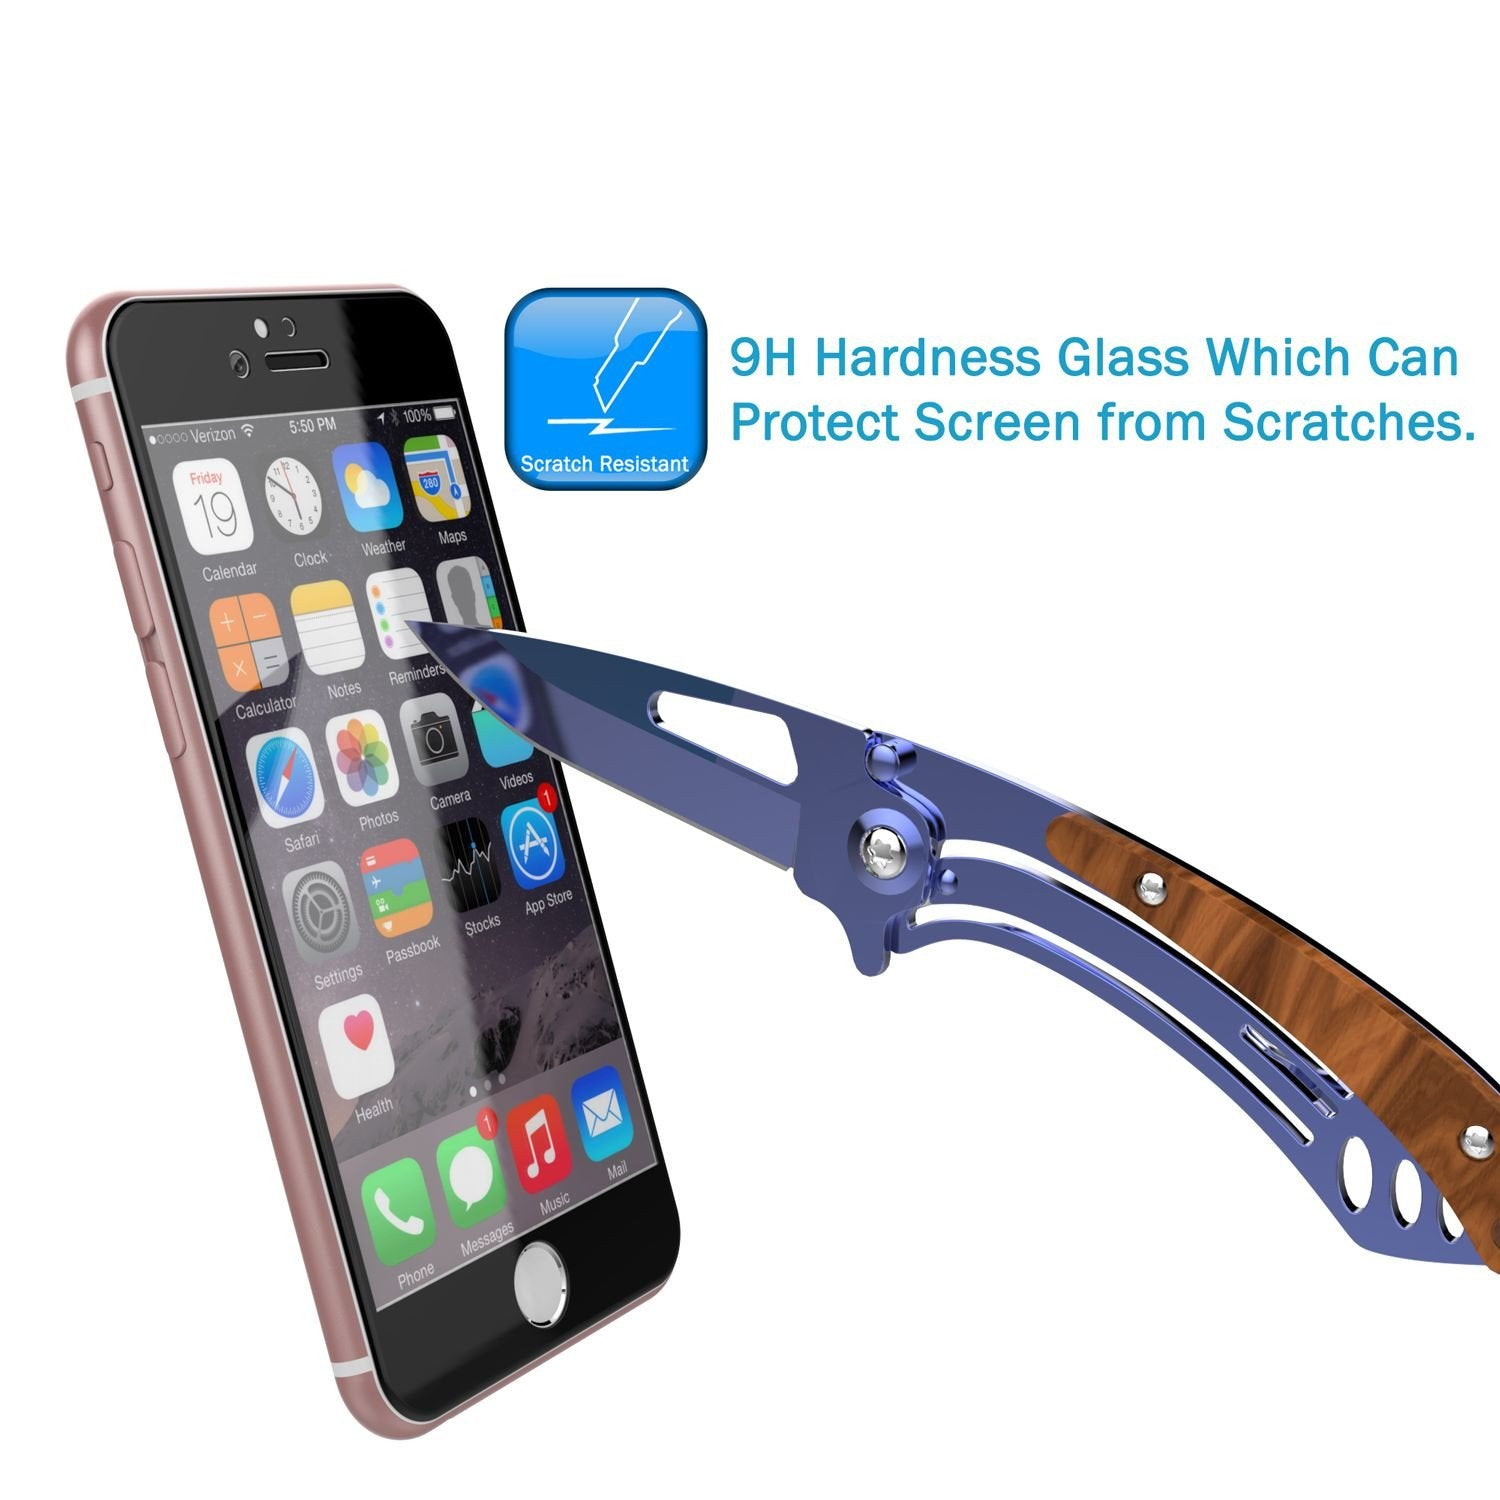 iPhone 6S/6 BlackTempered Glass Screen Protector, Punkcase SHIELD  Protector 0.33mm Thick 9H